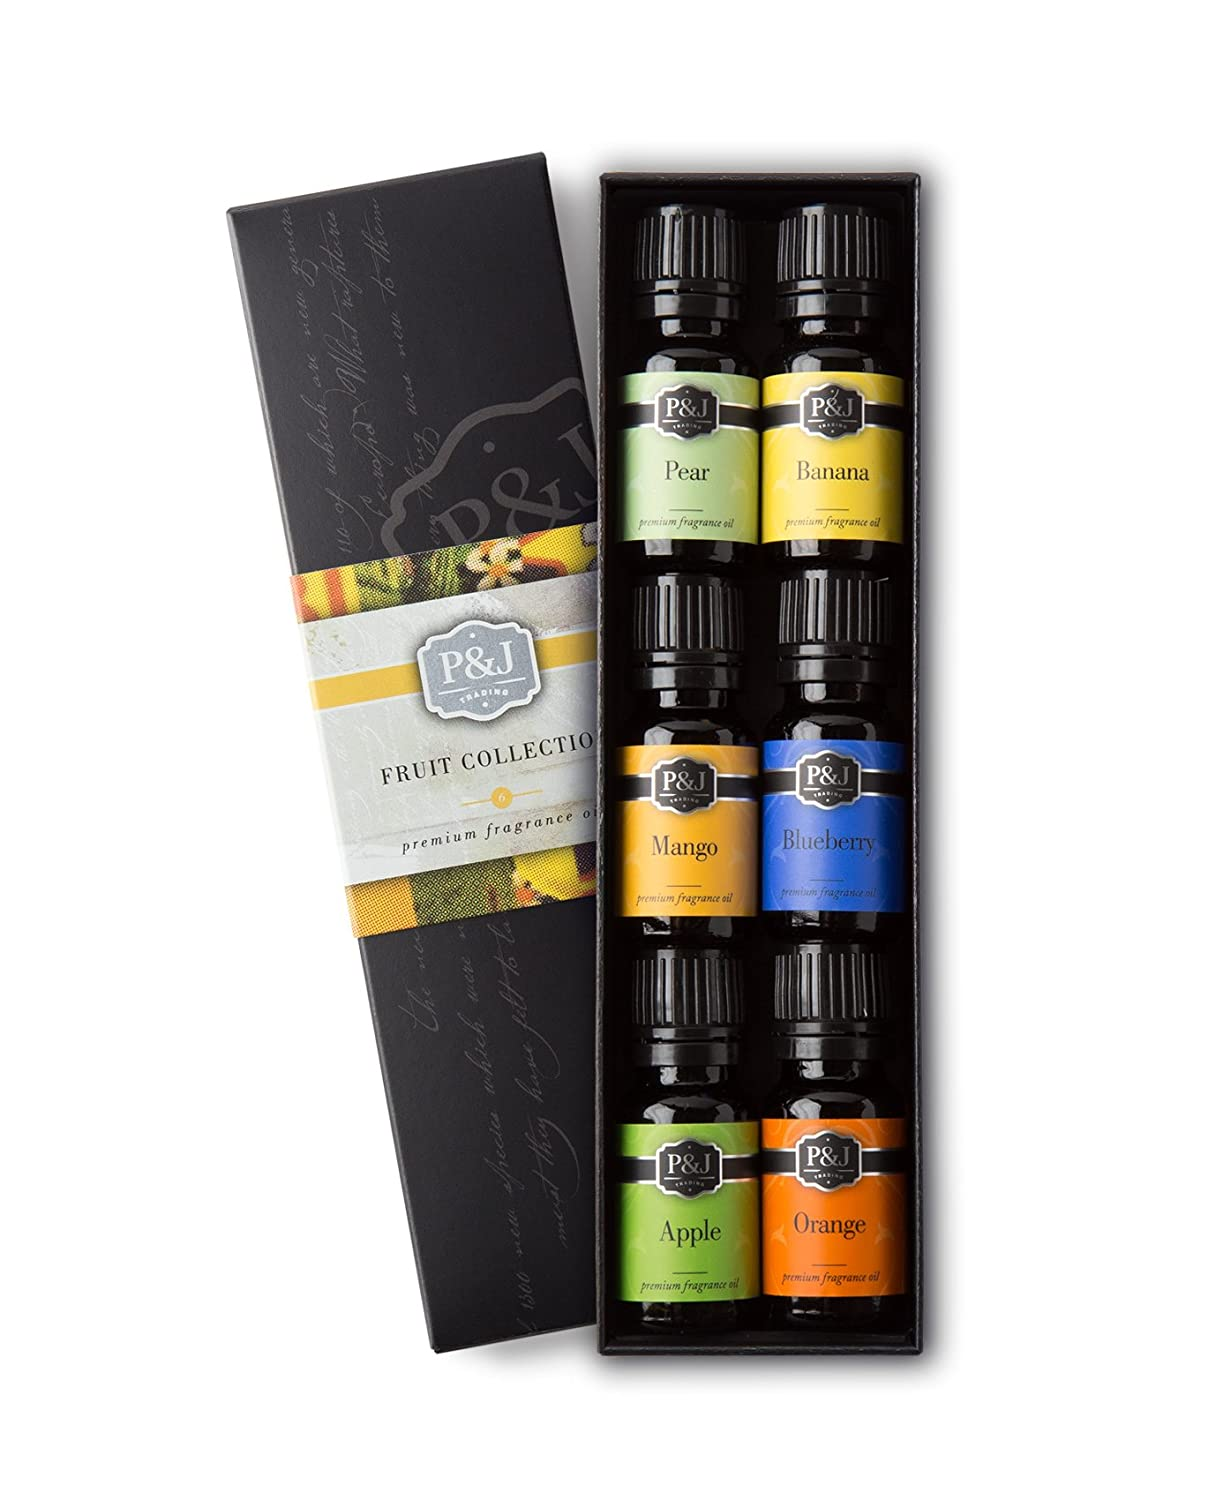 Fruit Set of 6 Premium Grade Fragrance Oils - Orange, Mango, Apple, Blueberry, Banana, Pear - 10ml